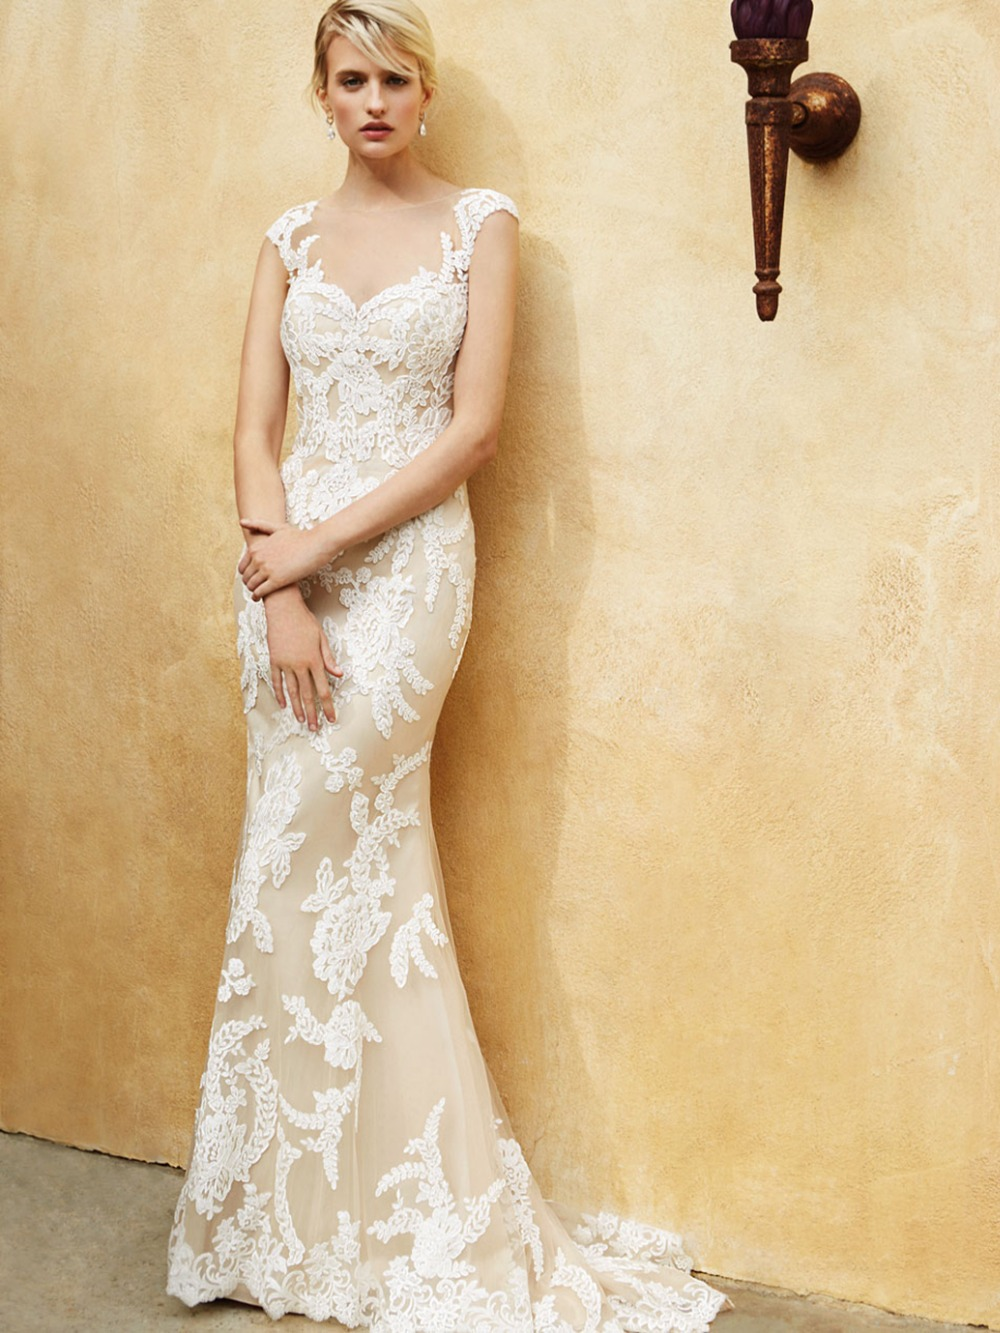 White dress design 2017 - Aliexpress Com Buy Ew409 Fashionable Scoop Cap Sleeves Mermaid Wedding Dress 2017 Lace Bridal Gown Sexy Design White Dress For Wedding Party From Reliable